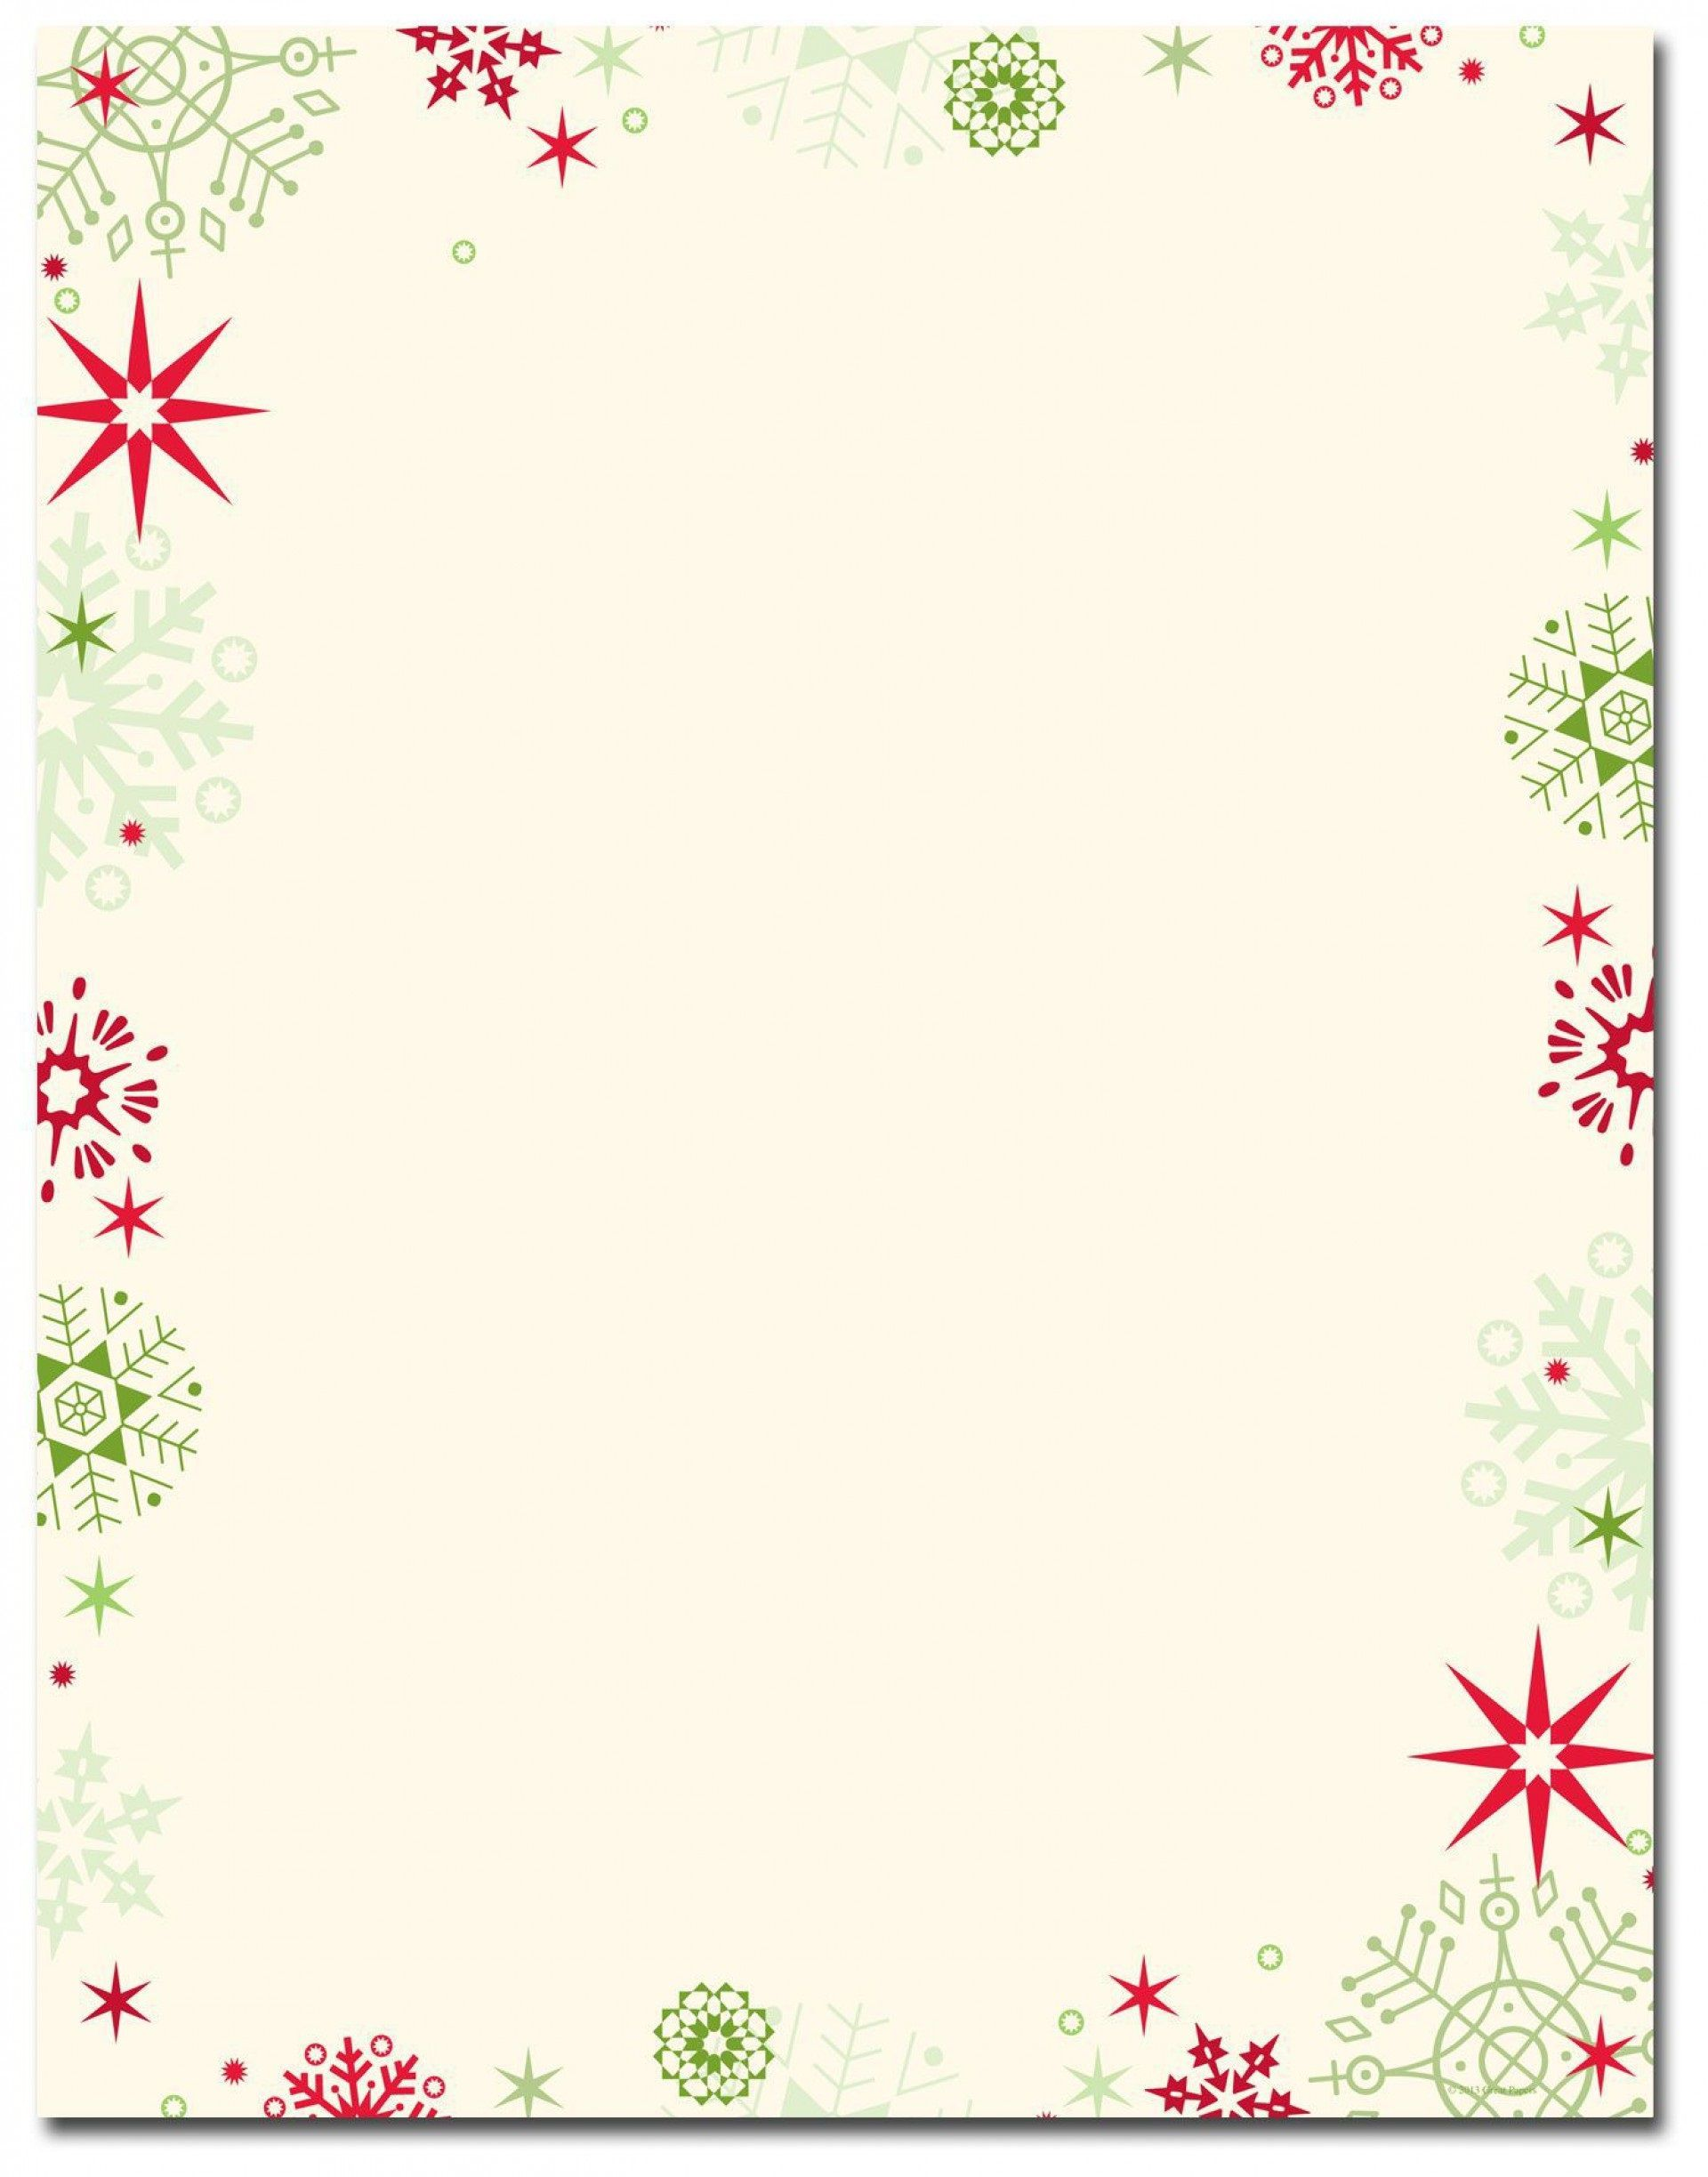 005 Formidable Free Christian Christma Stationery Template For Word Concept Full